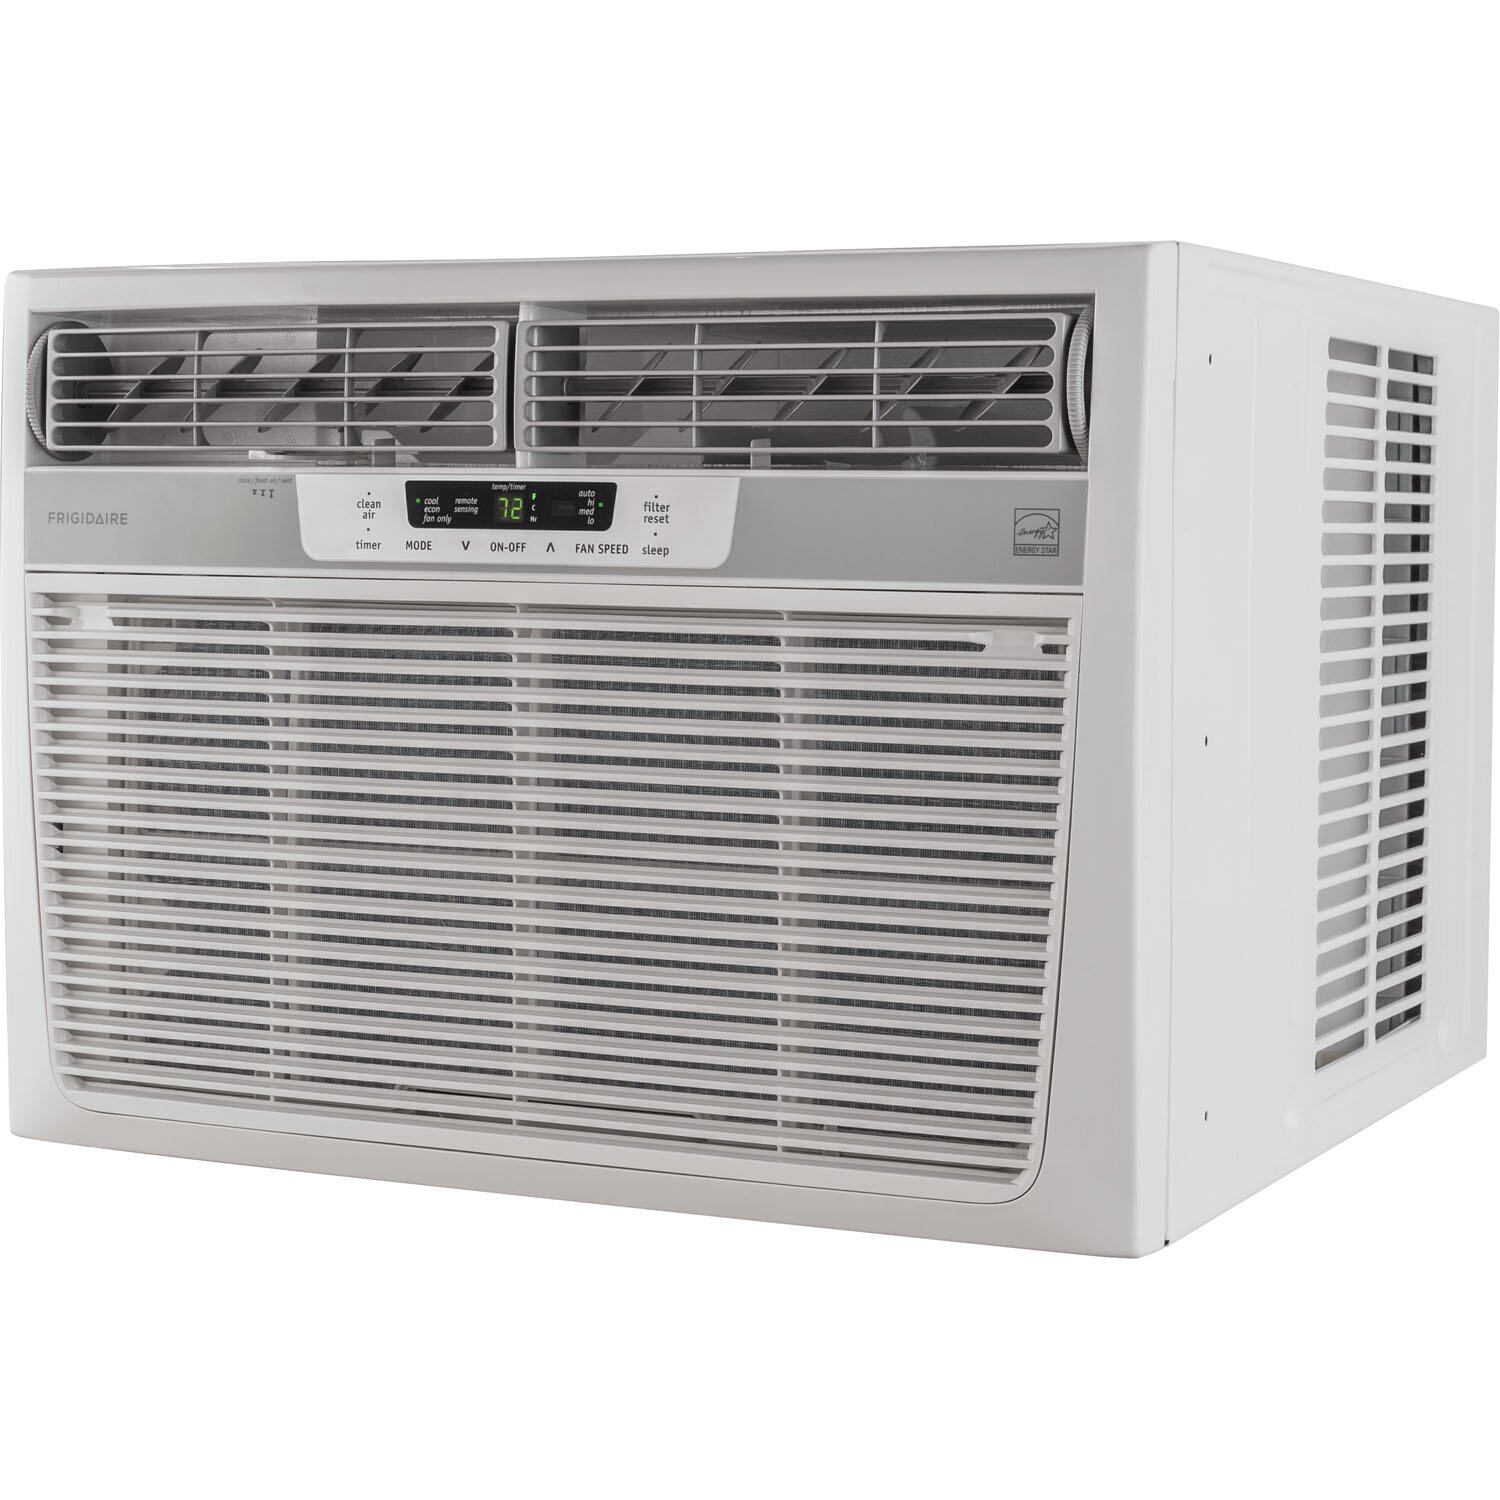 Star Window Heavy Duty Air Conditioner with Remote & Reviews Wayfair #4E6638